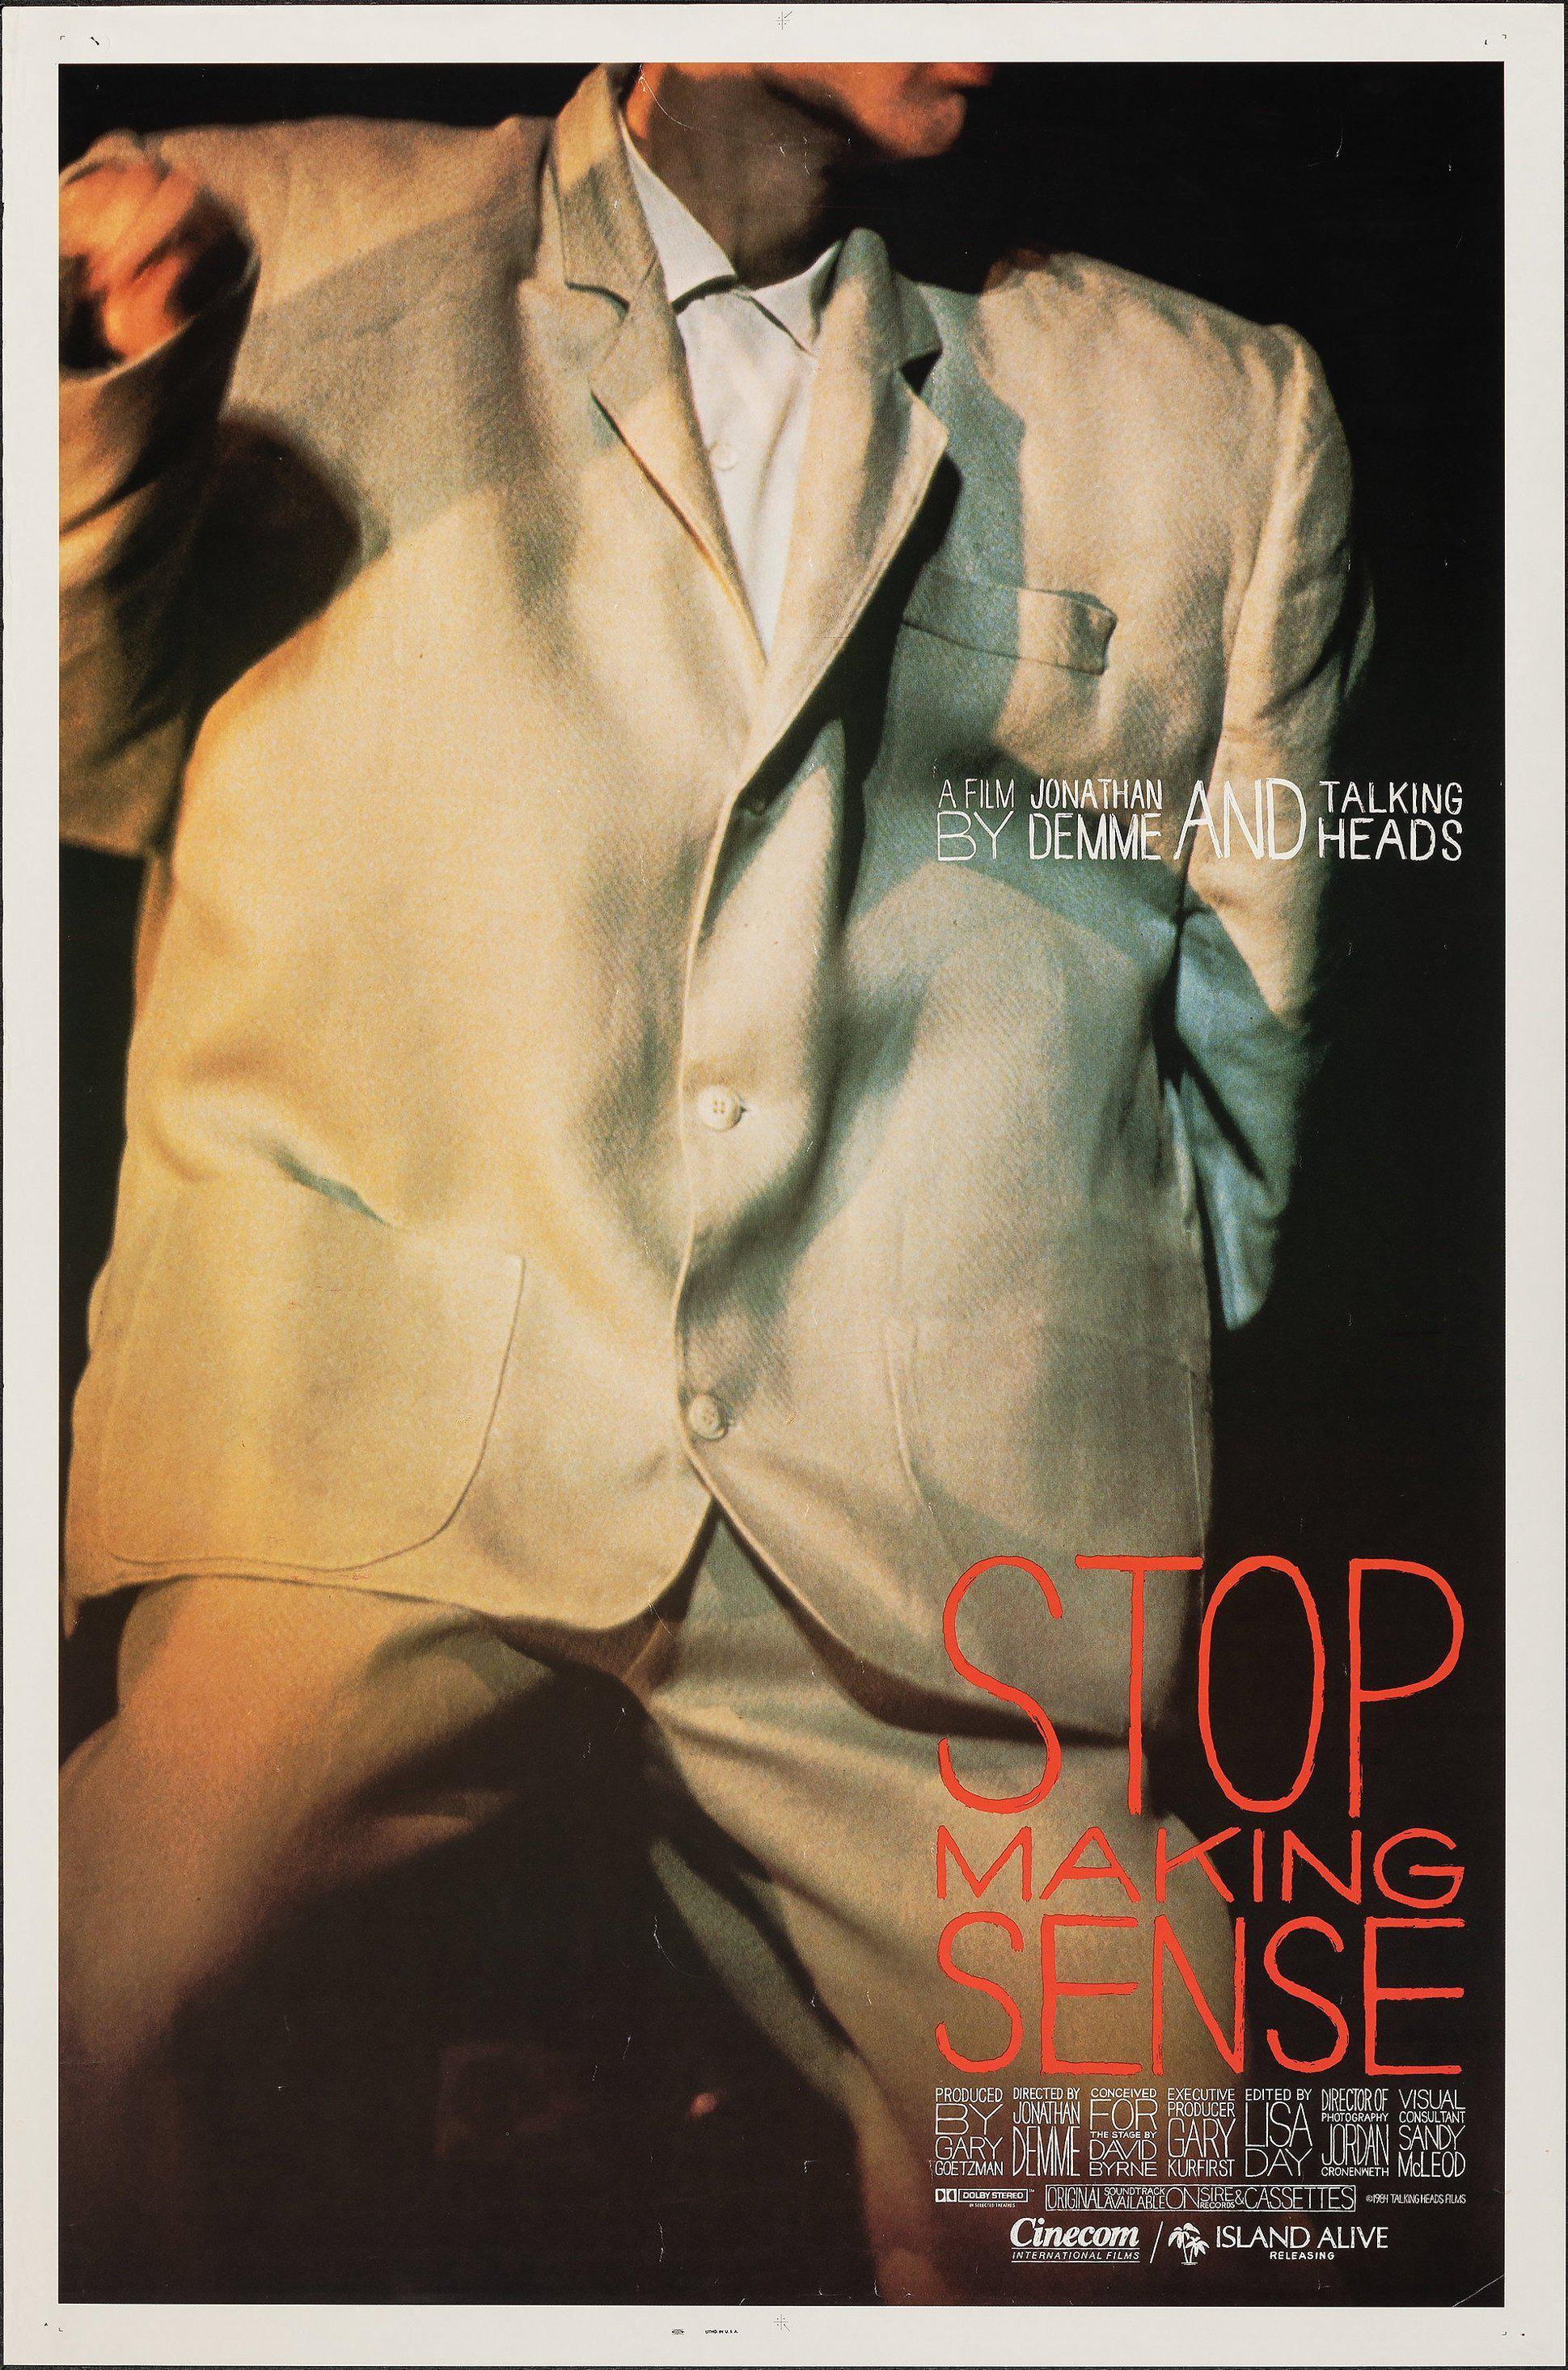 Stop Making Sense 1 Sheet (27x41) Original Vintage Movie Poster